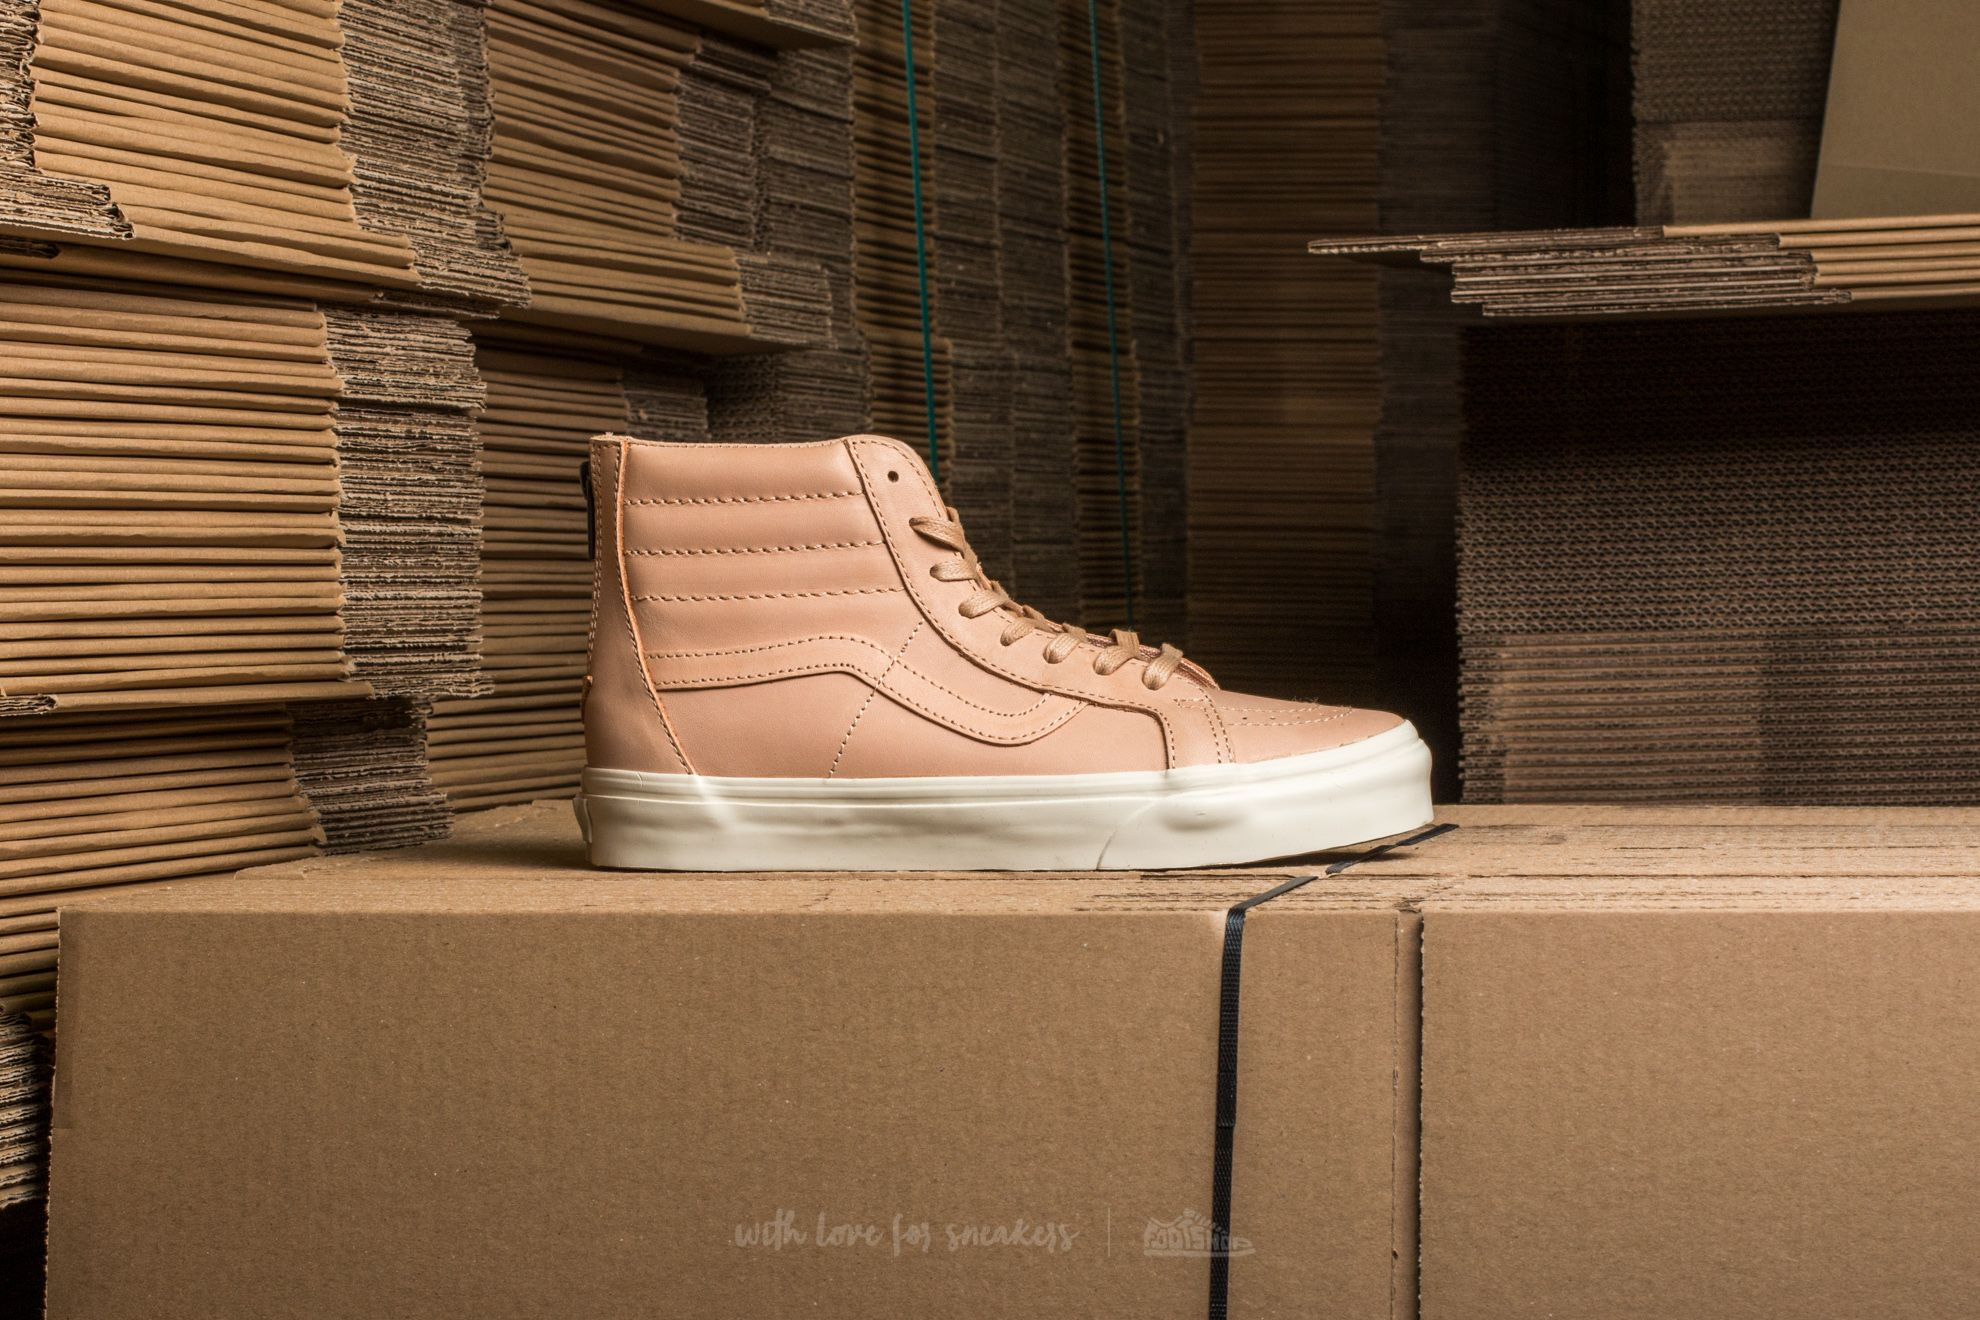 NEW IN! Vans SK8 HI REISSUE ZIP (Veggie Tan Leather) | Vans